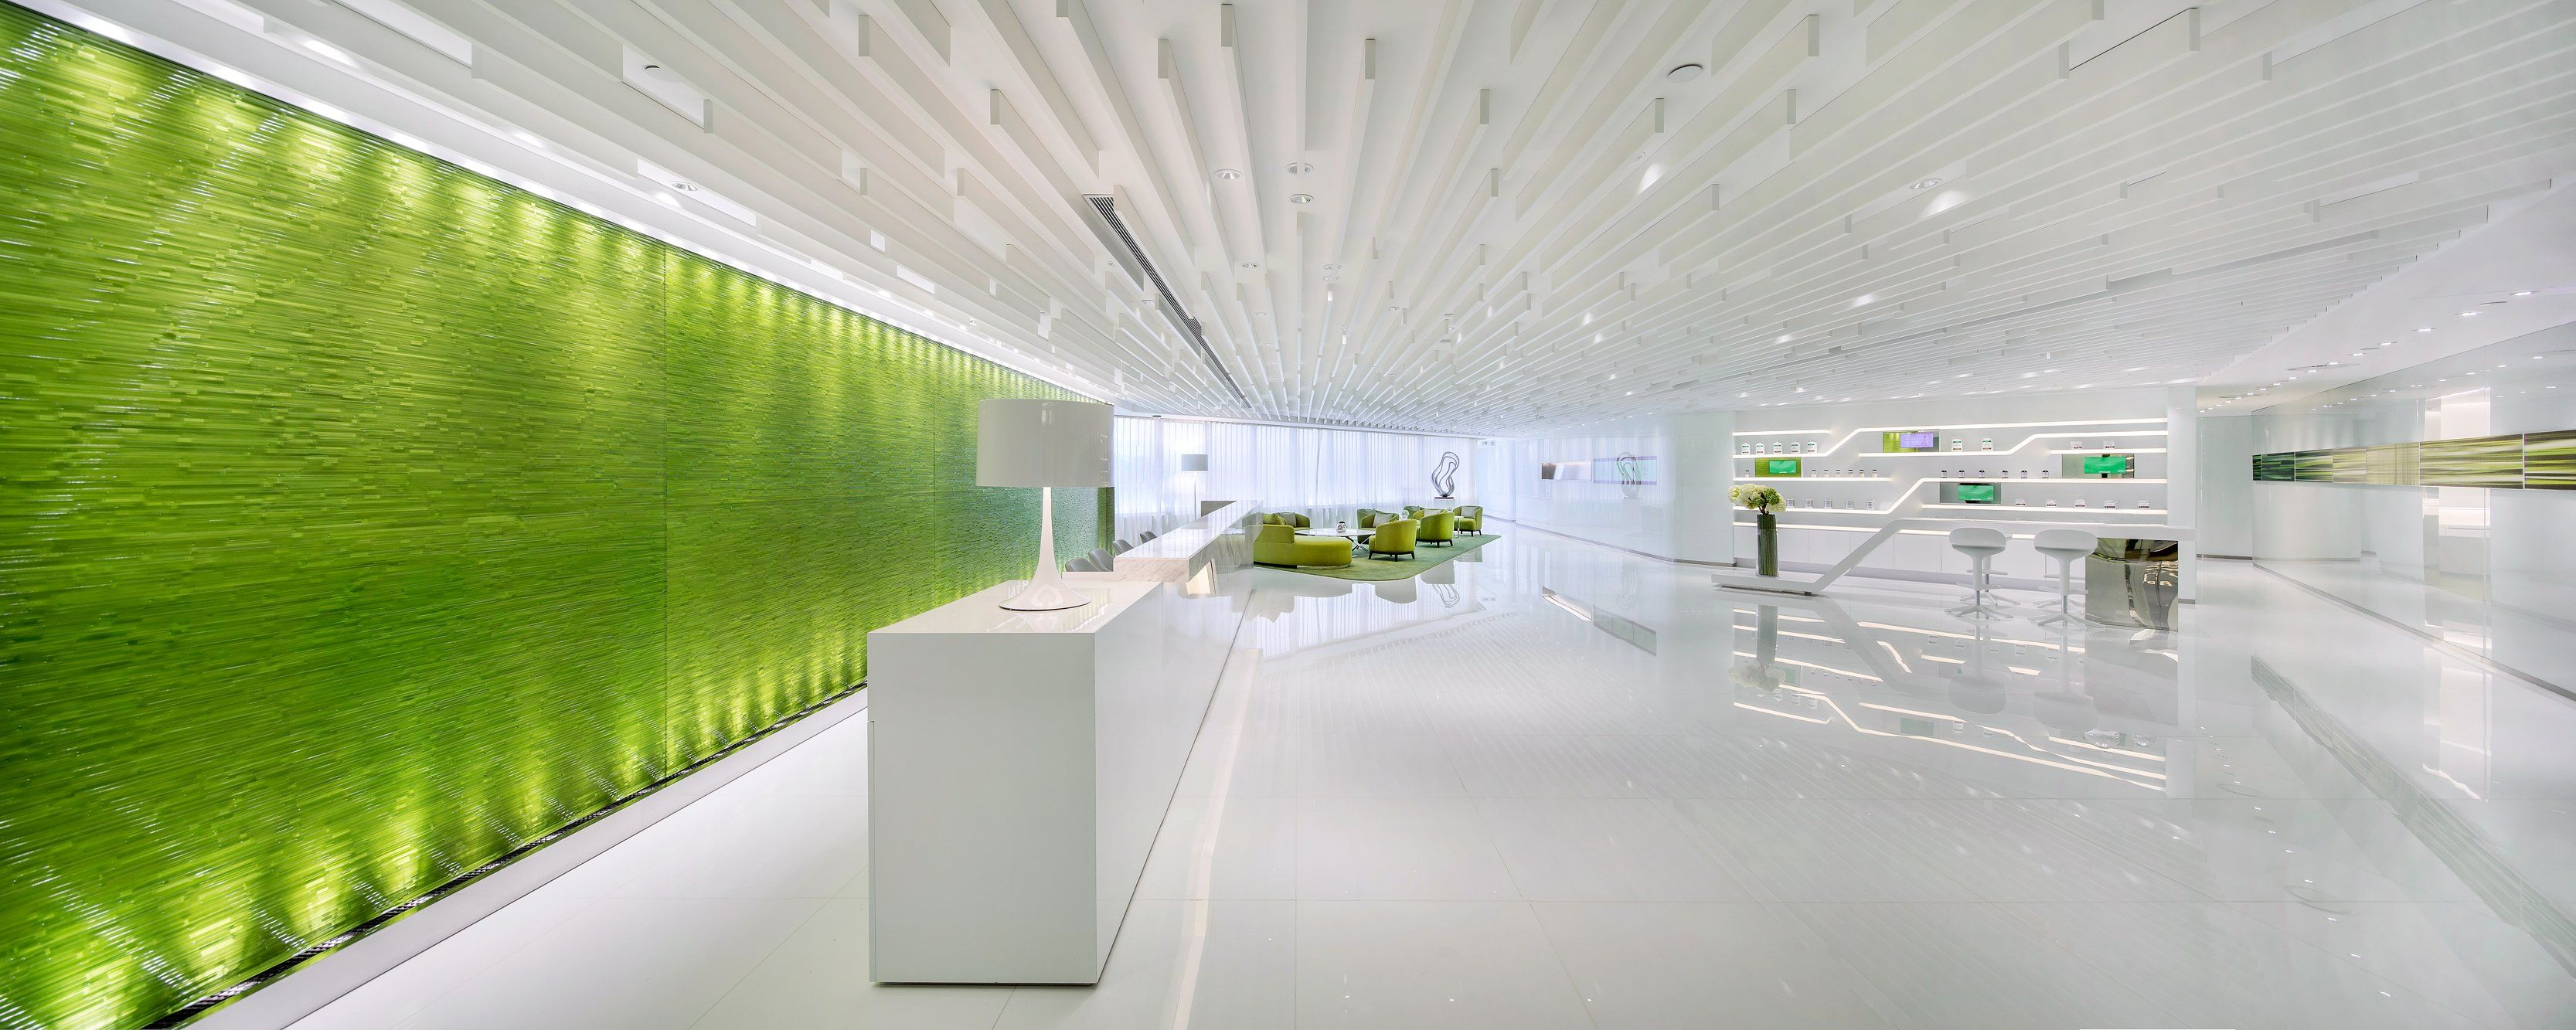 Neo derm medical aesthetic center in hong kong favorite for Office wall interior